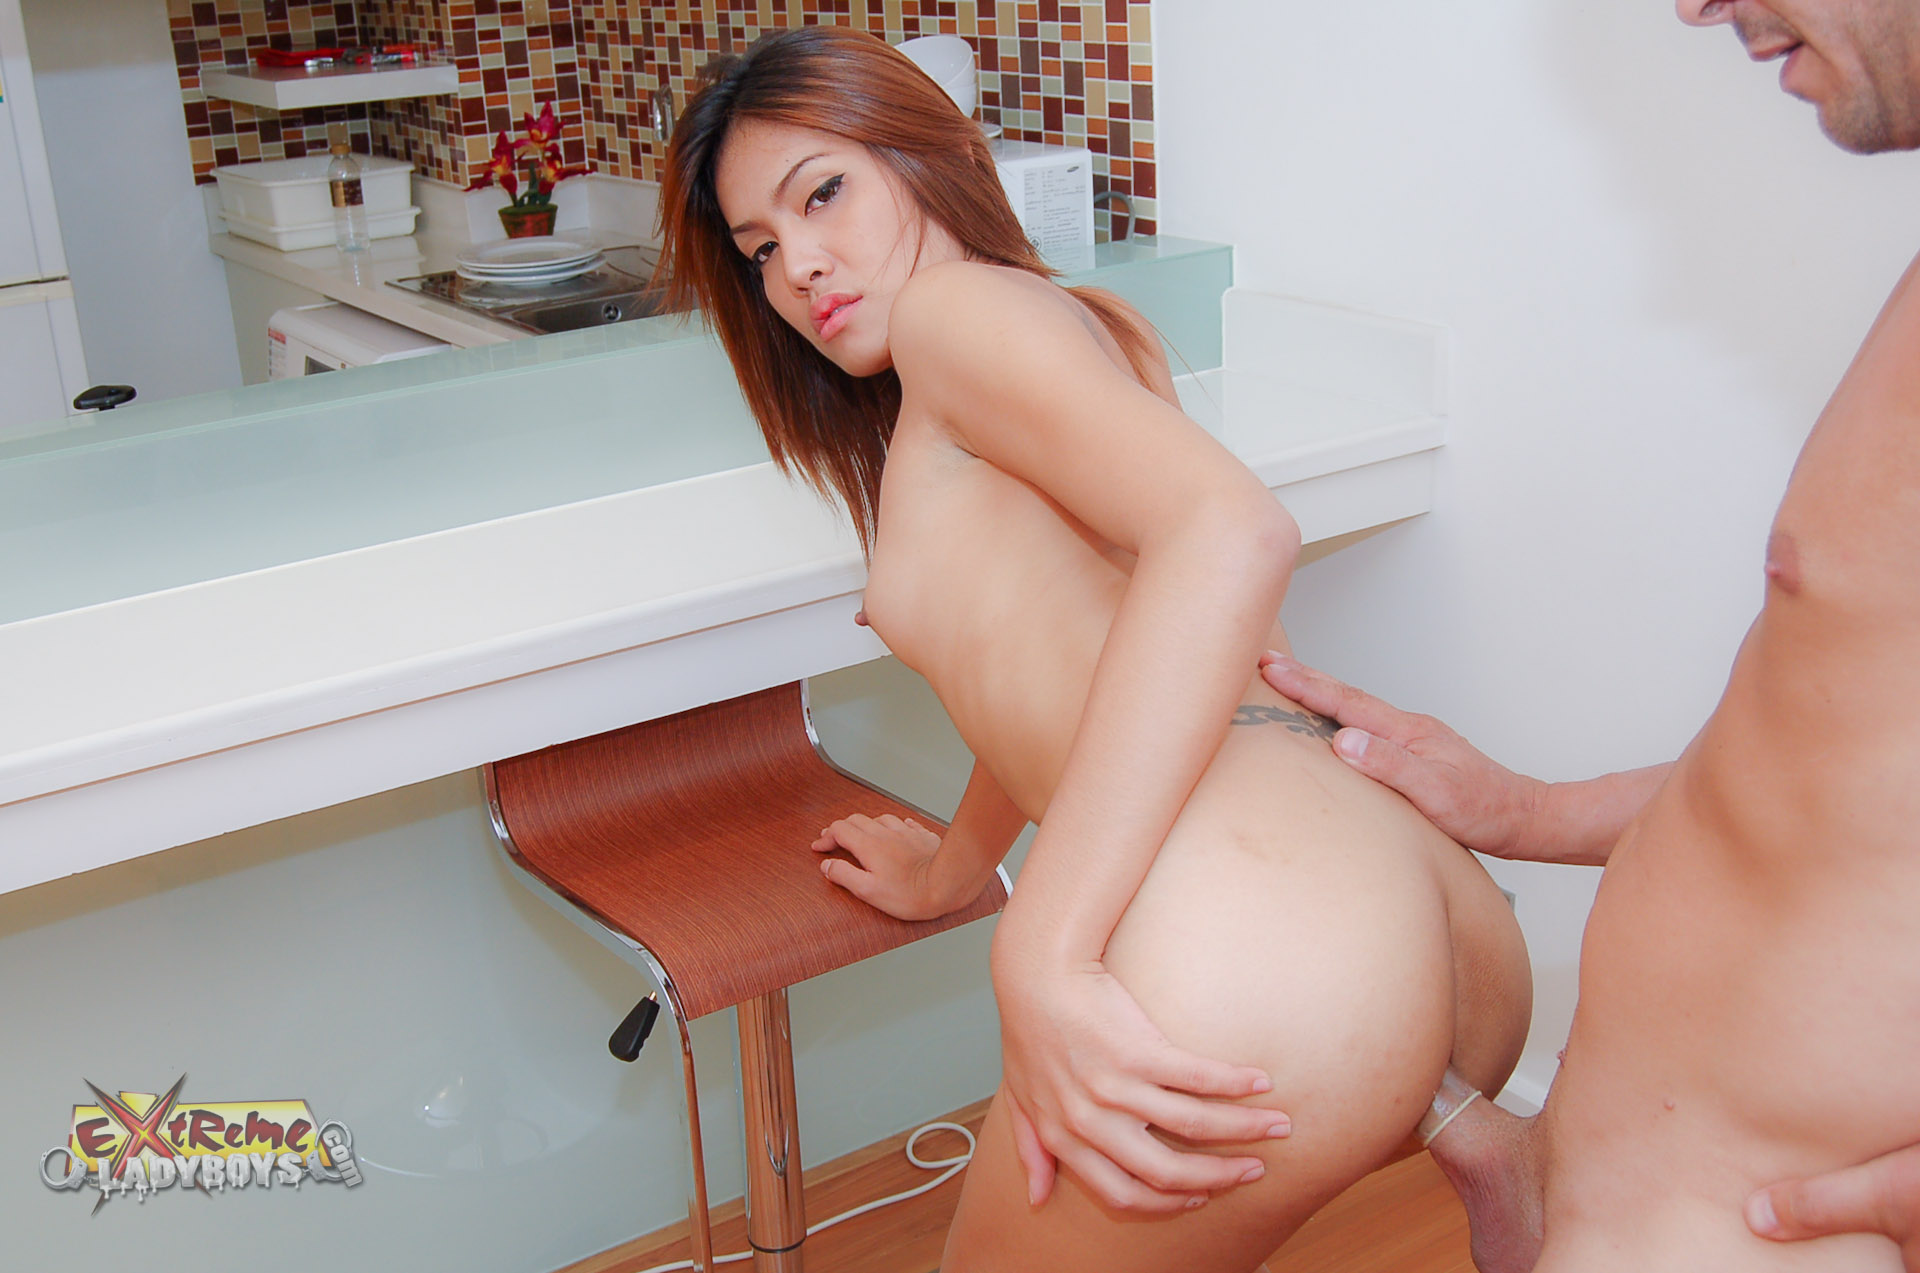 shemale fucked asian Extreme